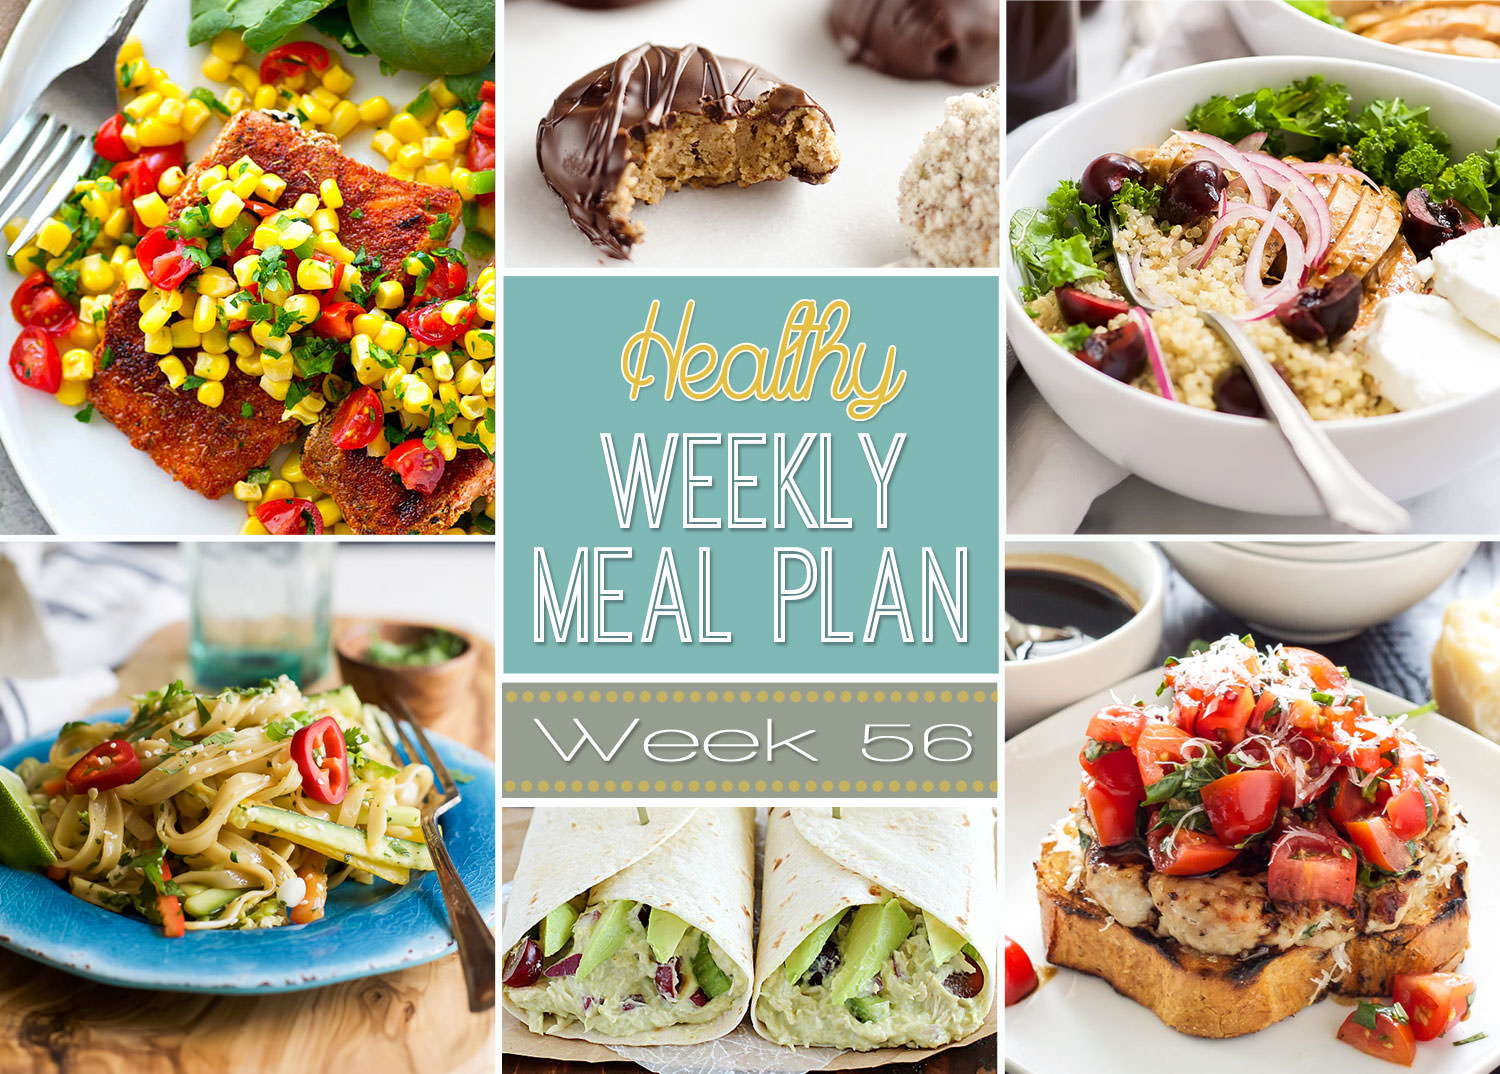 Healthy-Meal-Plan-Week-56-Horizontal